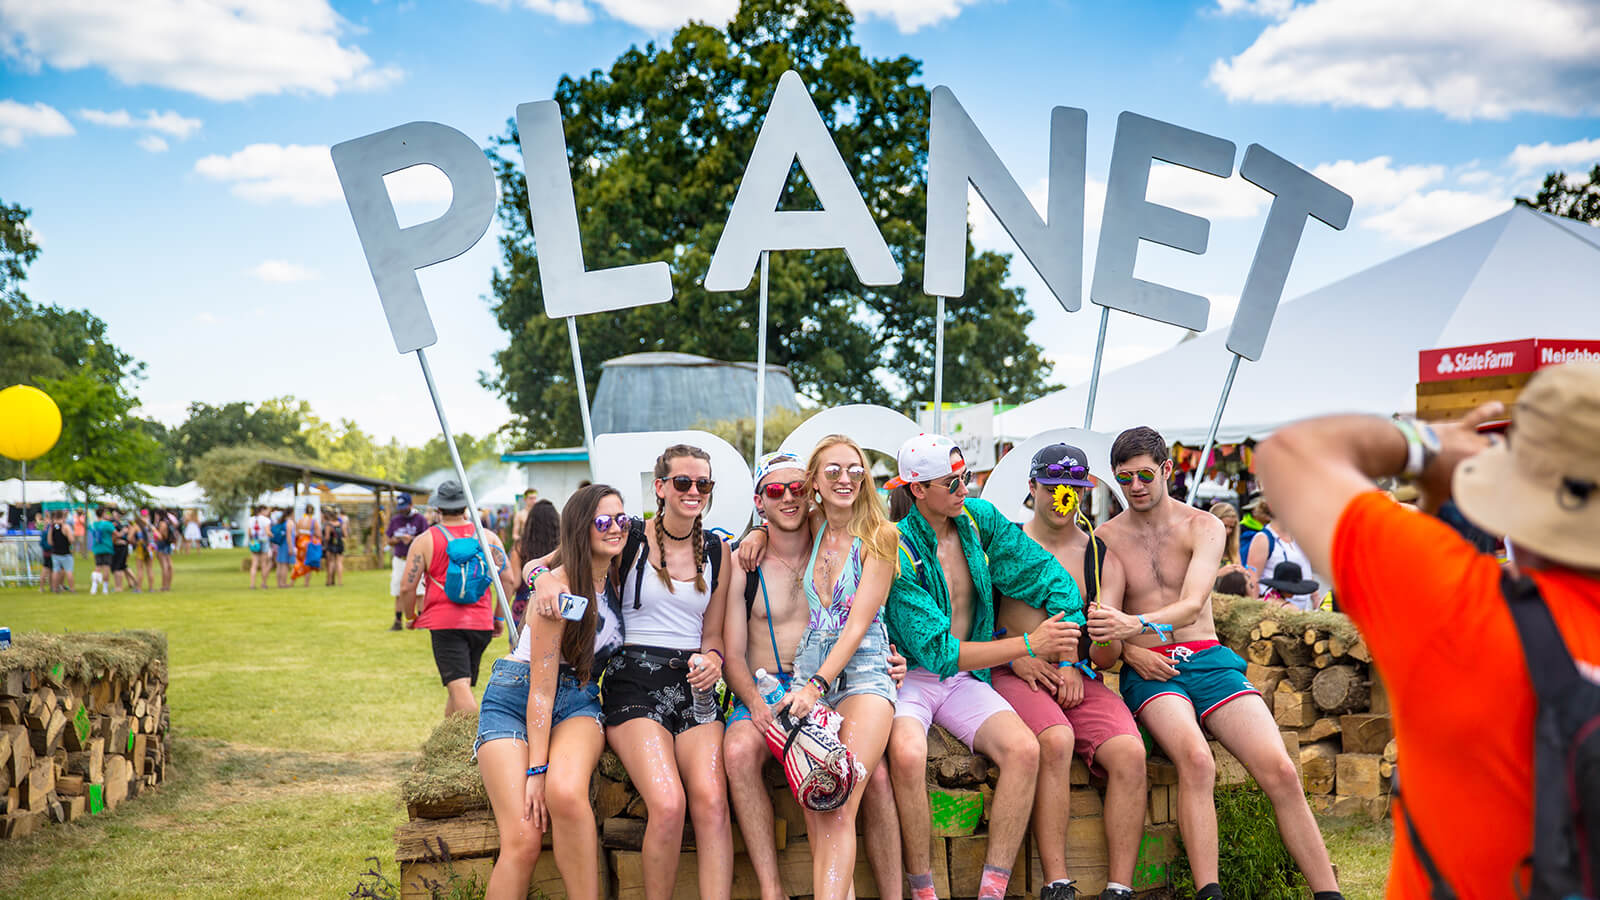 Photo of the Planet Roo sign built by Ben Fieker for Bonnaroo Music and Arts Festival